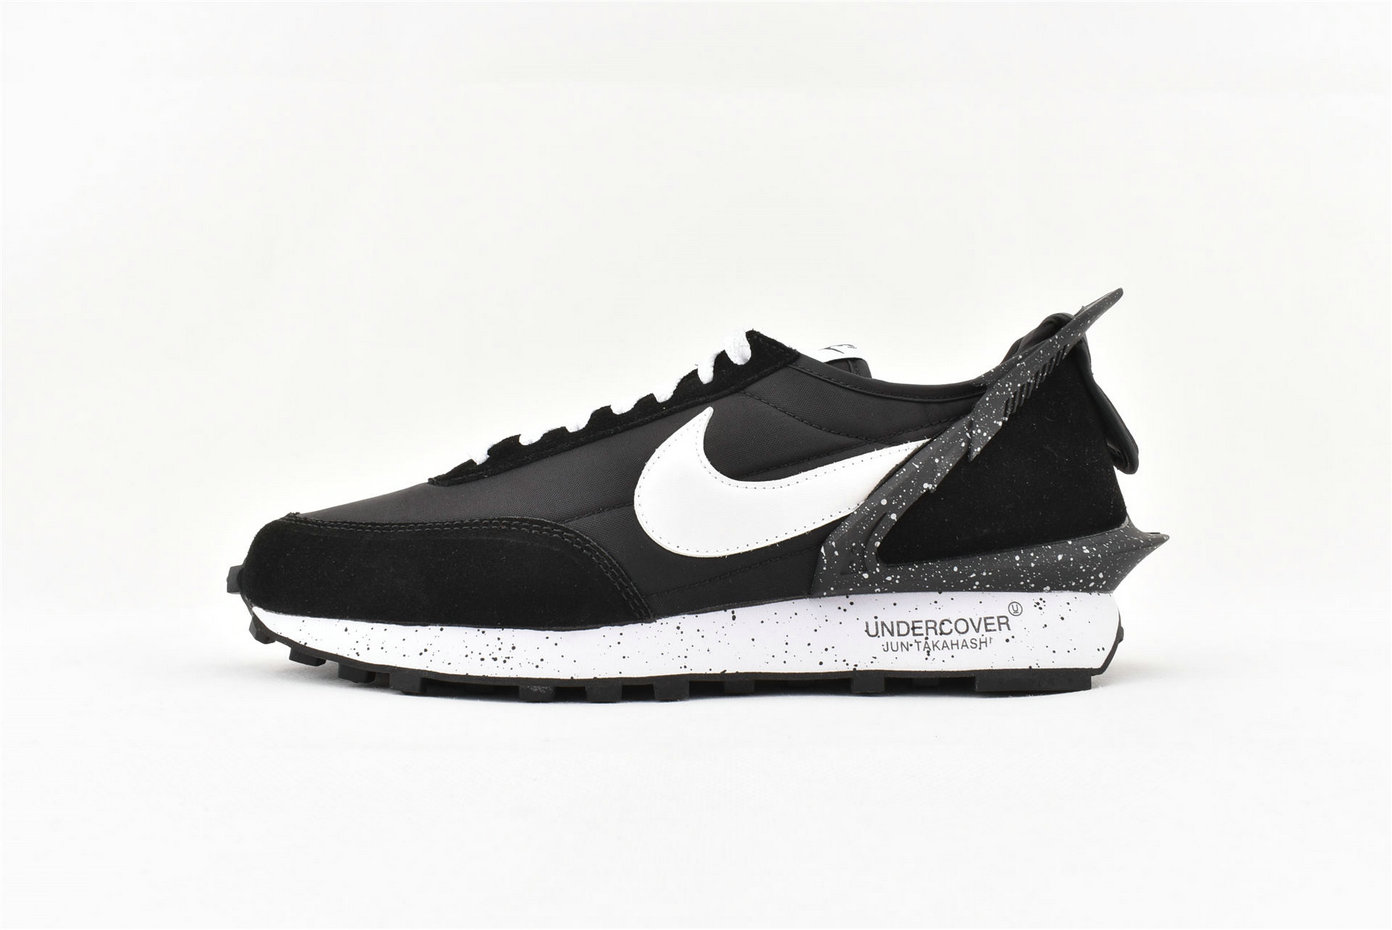 2019 Wholesale Cheap Sacai x Nike Waffle Racer Special Shaped Black White Splash Ink AA6853 001 - www.wholesaleflyknit.com